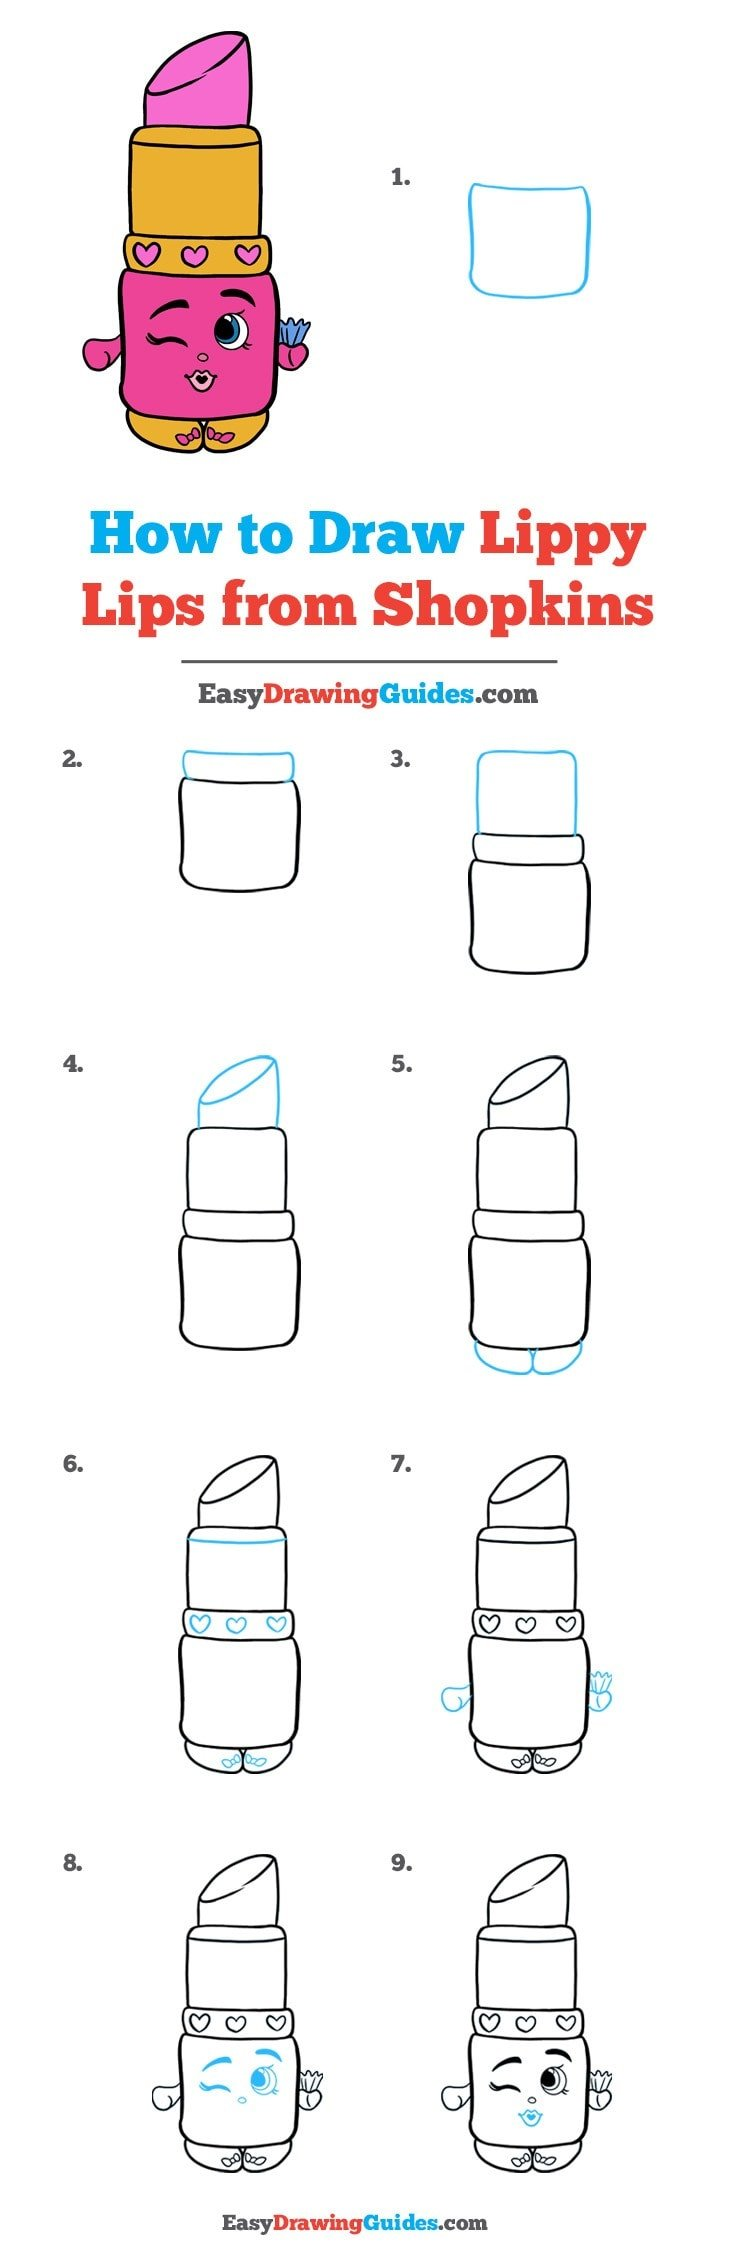 How to Draw Lippy Lips from Shopkins